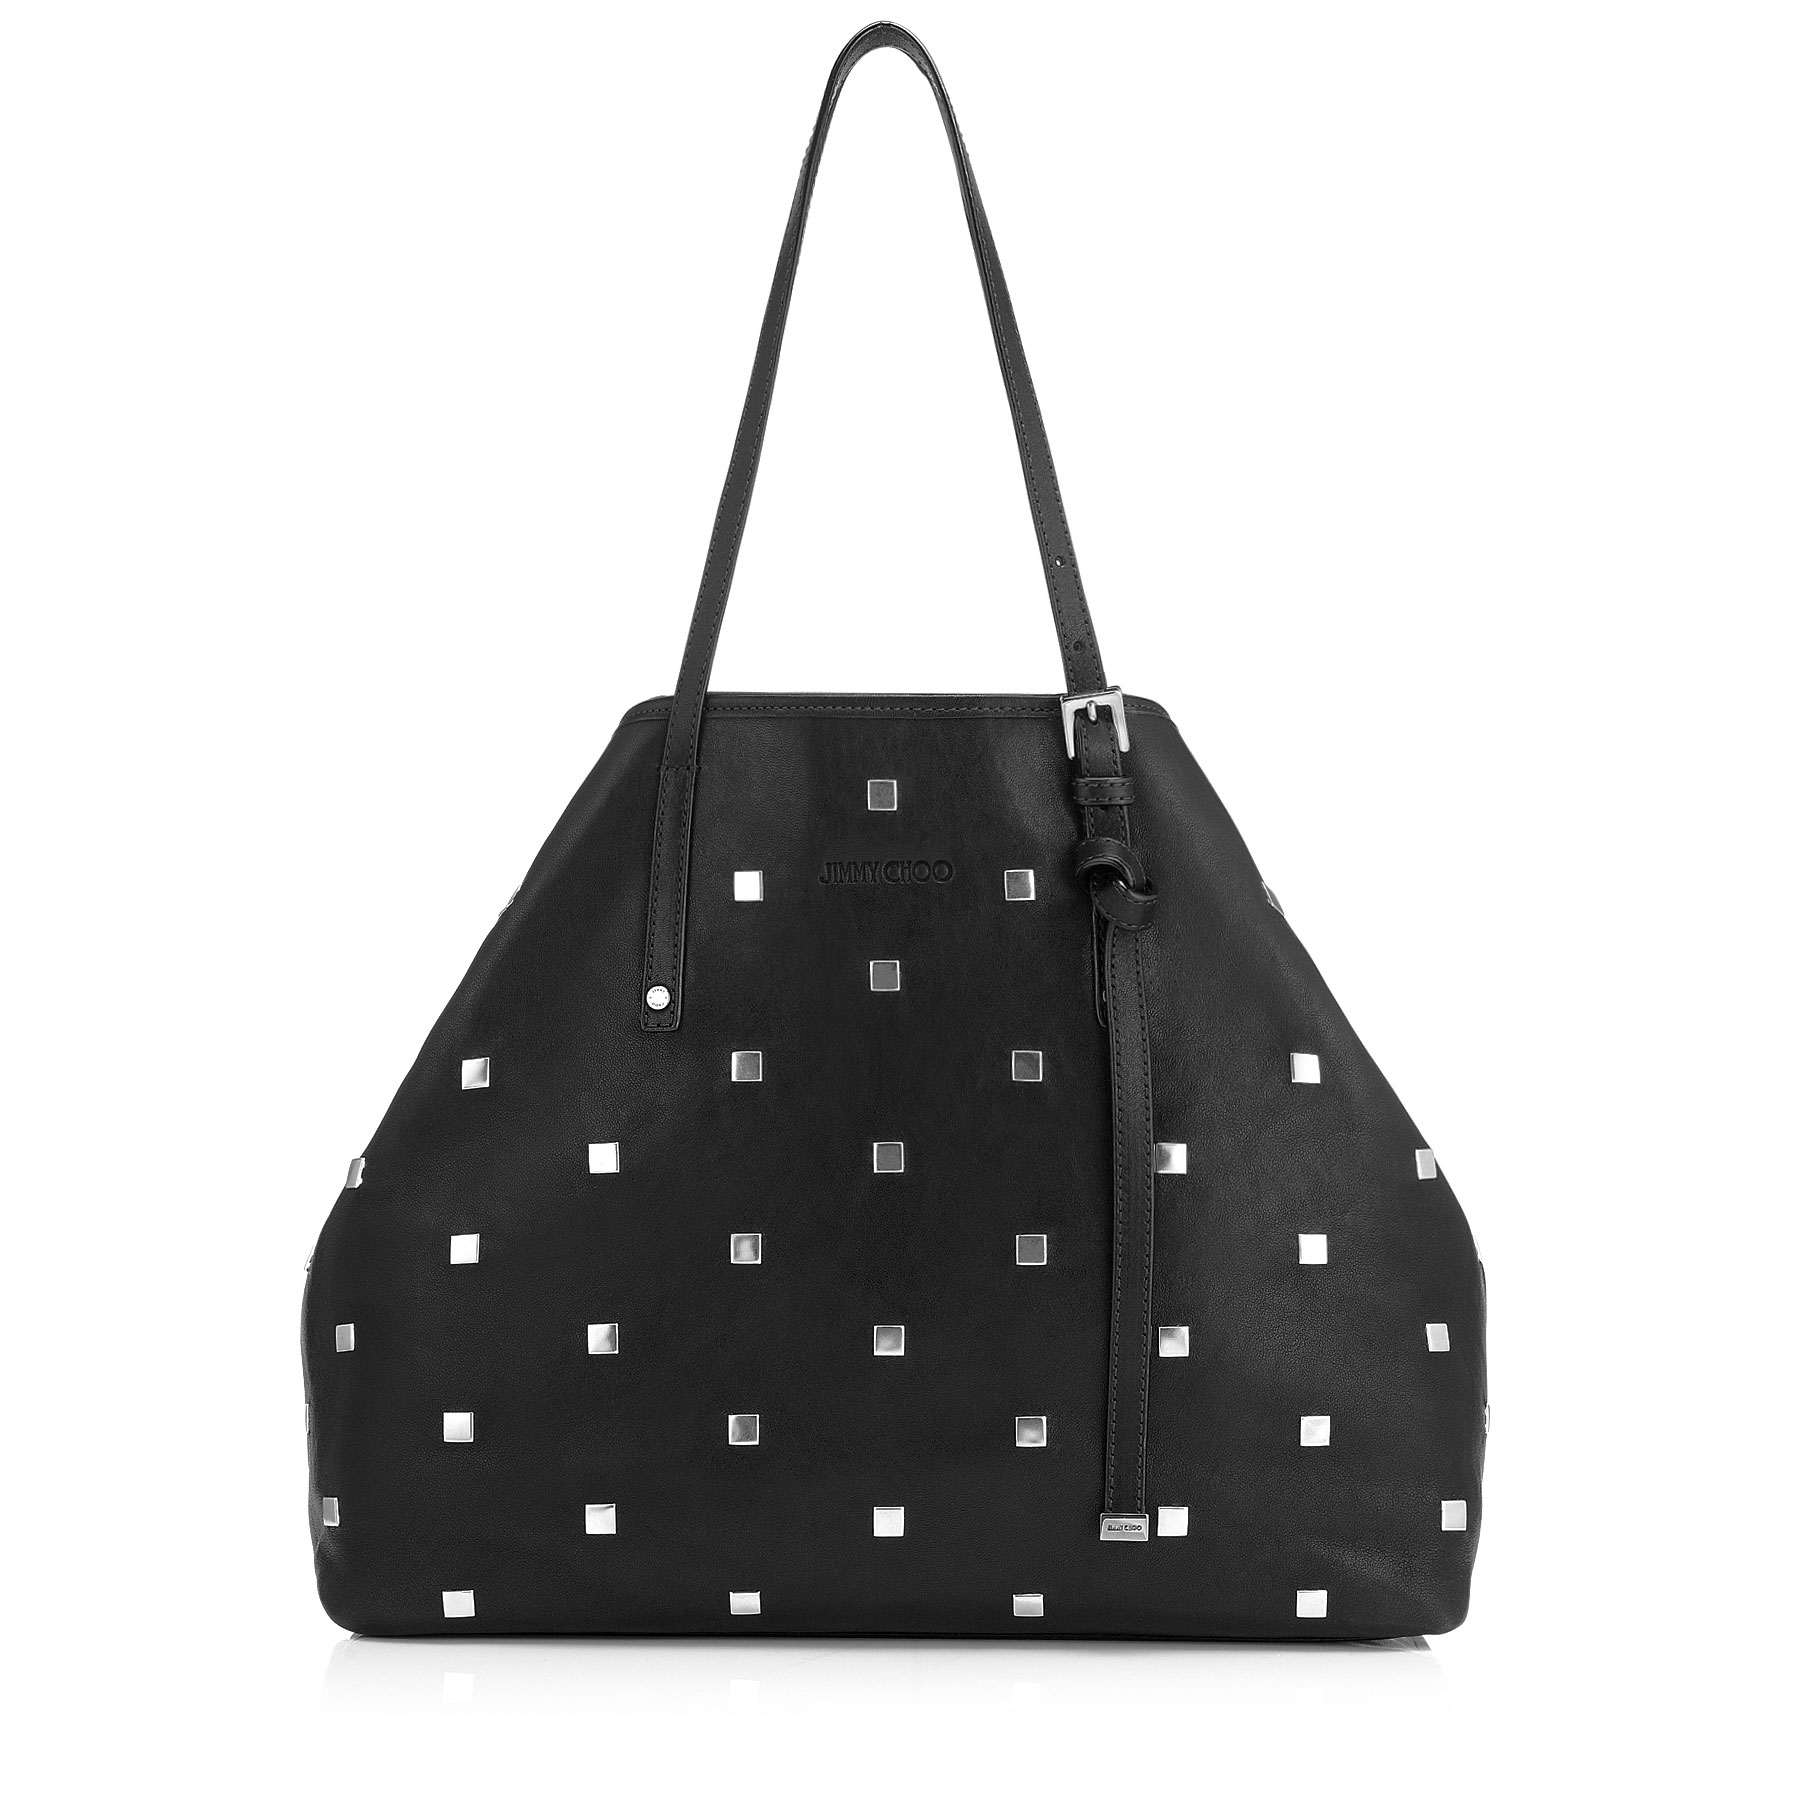 SASHA/M Black Leather Tote Bag with Square Studs